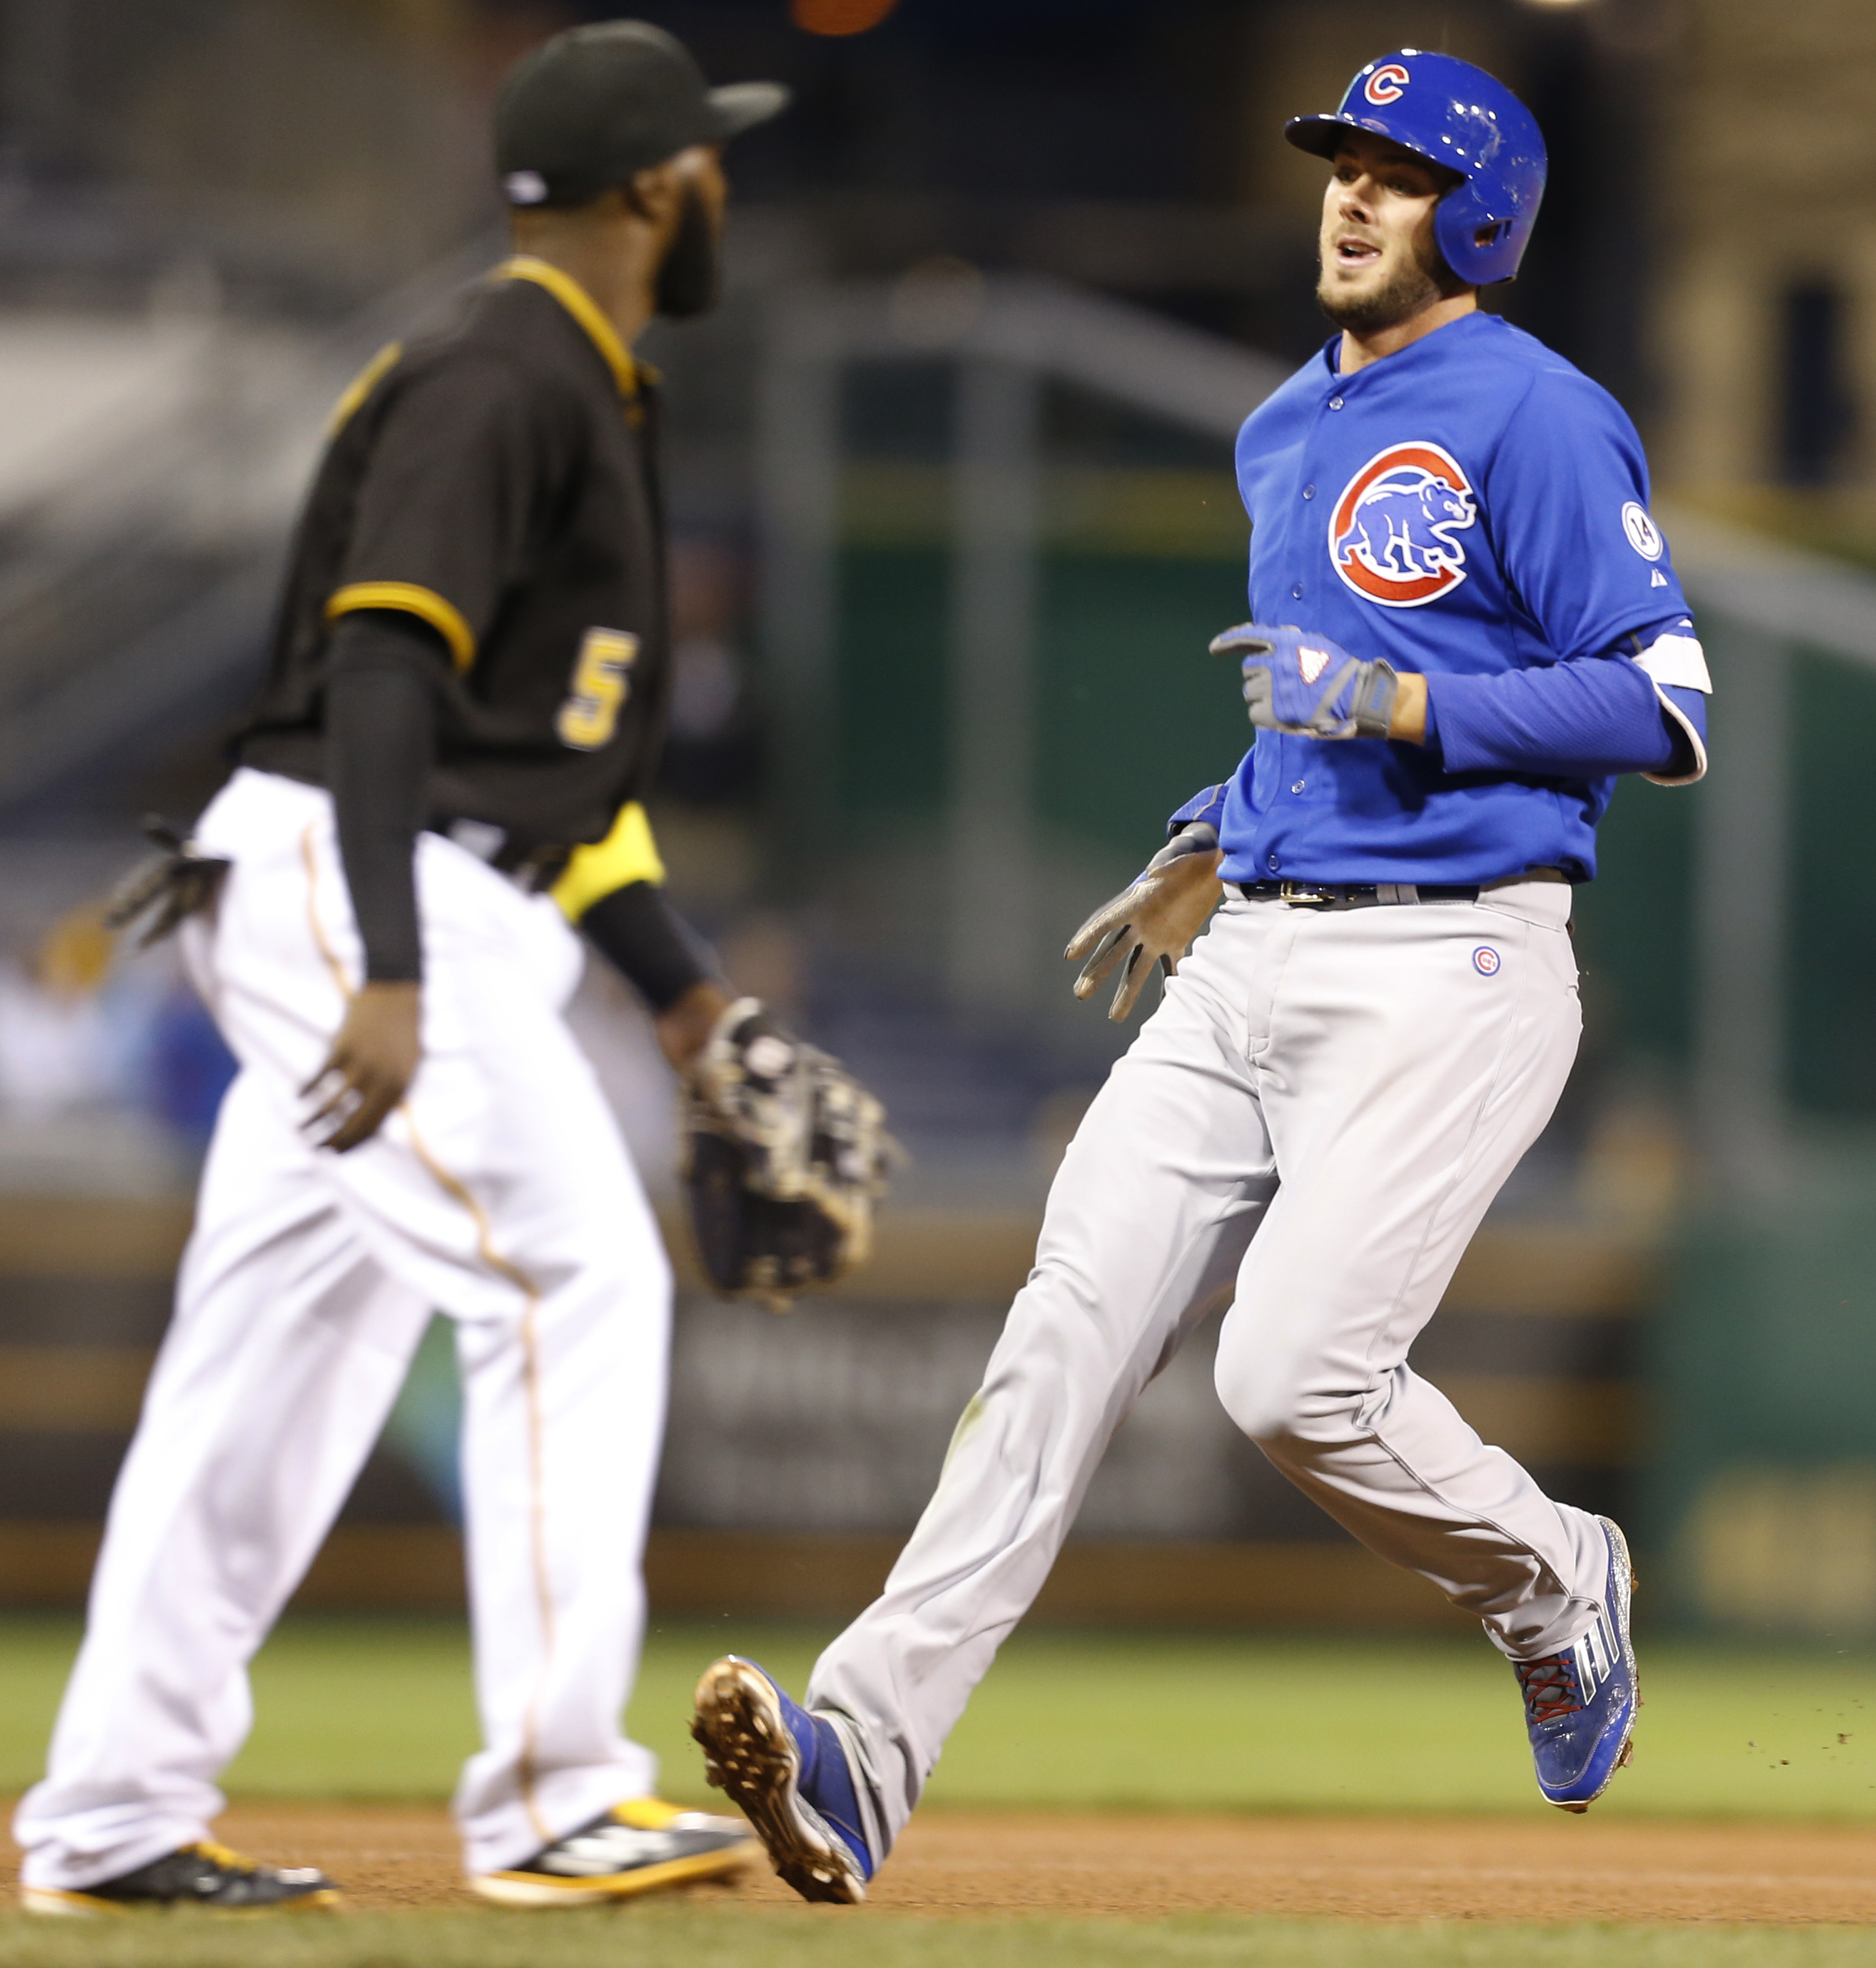 Chicago Cubs' Kris Bryant, right, trots into third as Pittsburgh Pirates third baseman Josh Harrison looks for the ball in the fourth inning of a baseball game on Wednesday, April 22, 2015, in Pittsburgh. Bryant hit a fly ball between right fielder Gregor